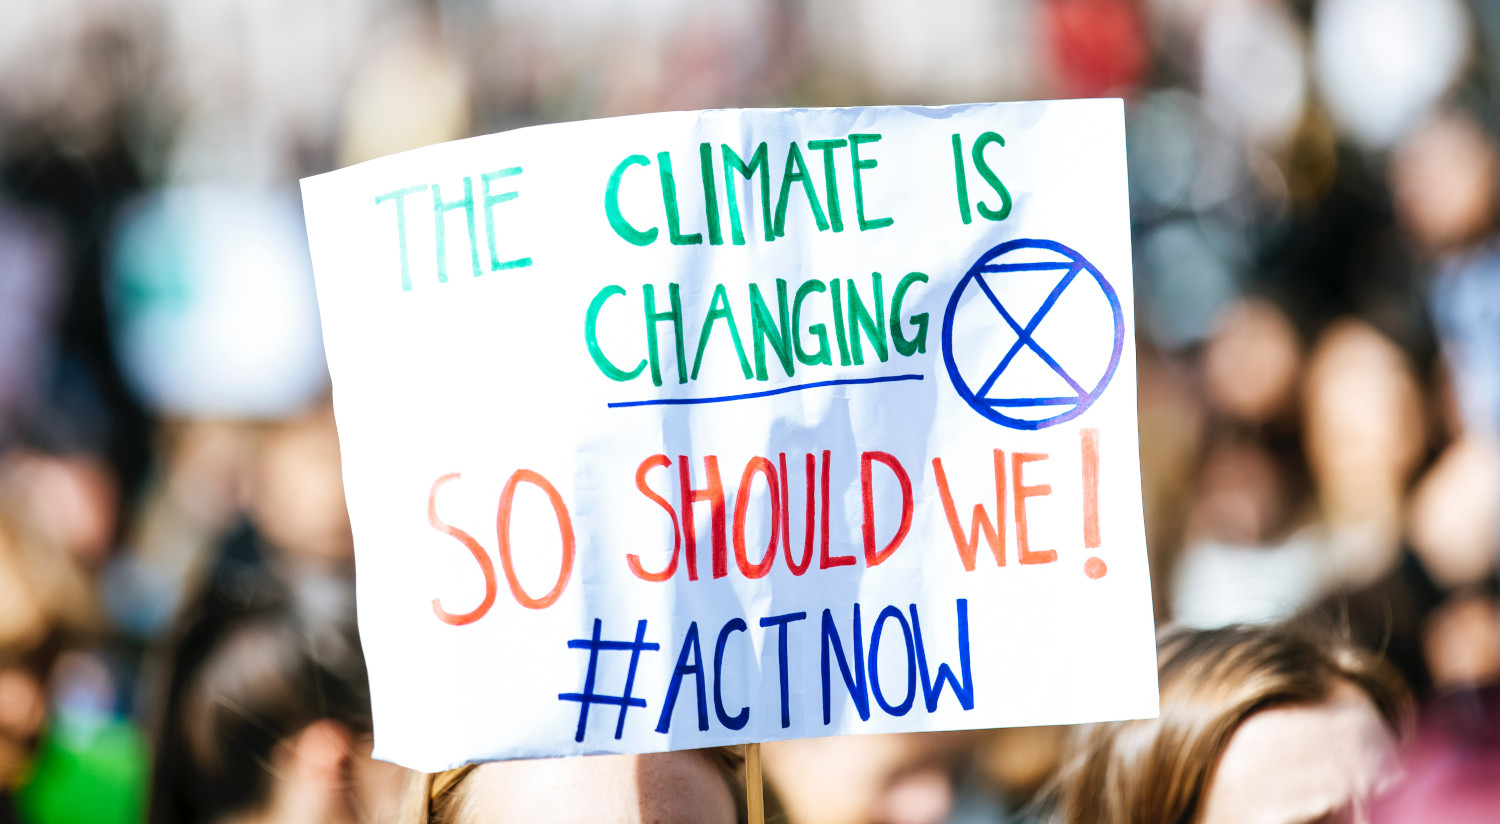 36 climate change organizations that know the climate crisis can't be solved alone.